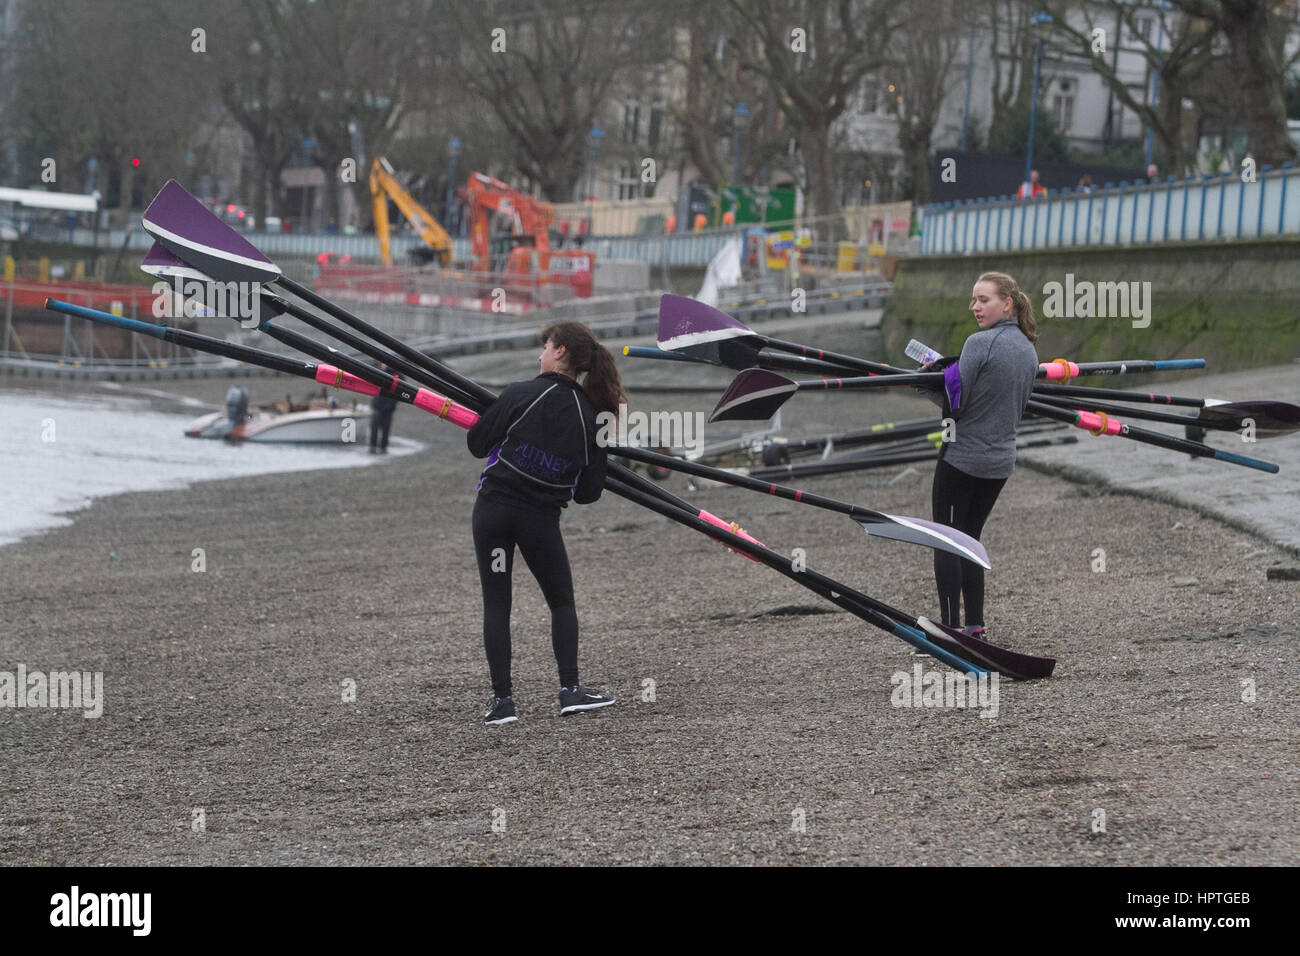 Putney London, UK. 25th Feb, 2017. Rowers representing various rowing clubs, schools and colleges practice on The Stock Photo